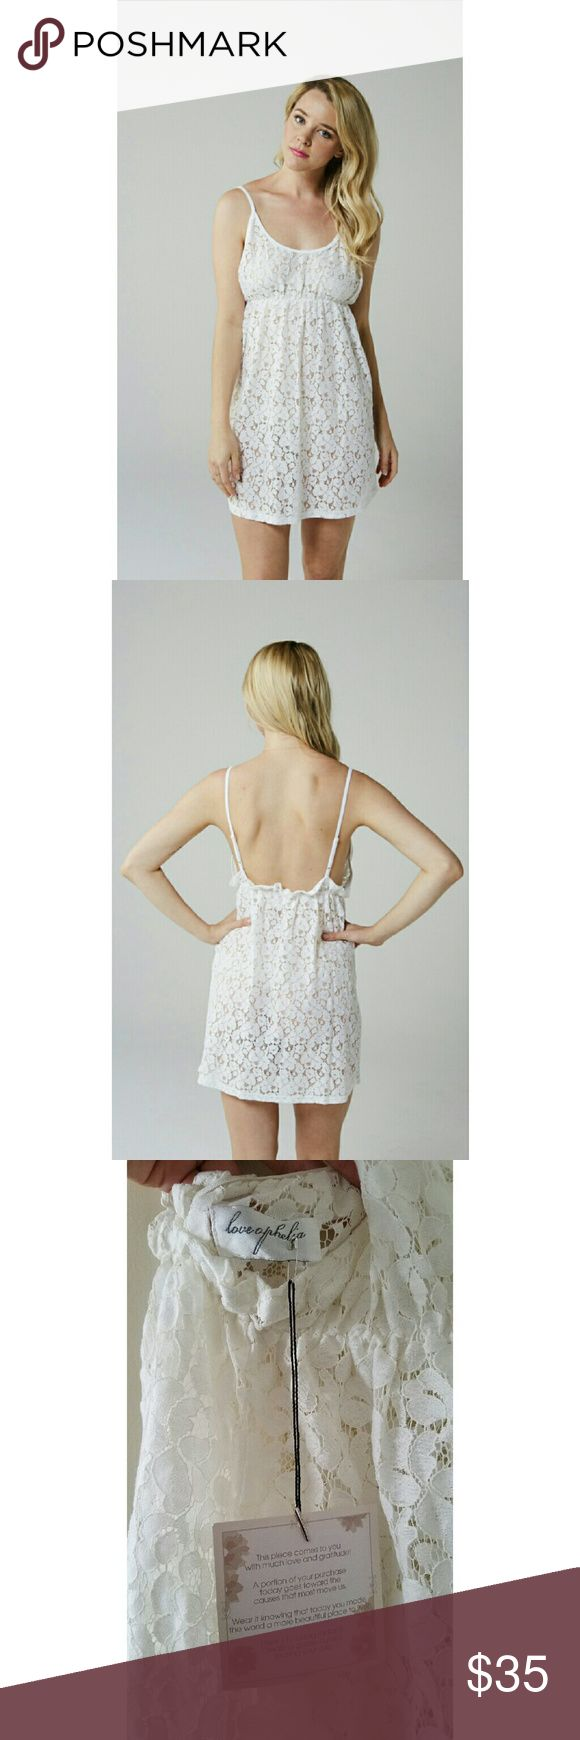 Love Ophelia Scarlett Lace Nightie Feminine flowers trail along this soft and sheer antique white silhouette. Scoops gently across the back. Makes for a sultry honeymoon set when paired with lace robe.  Made in the USA  Floral lace in cotton  Adjustable straps  Hand wash Love Ophelia Intimates & Sleepwear Chemises & Slips